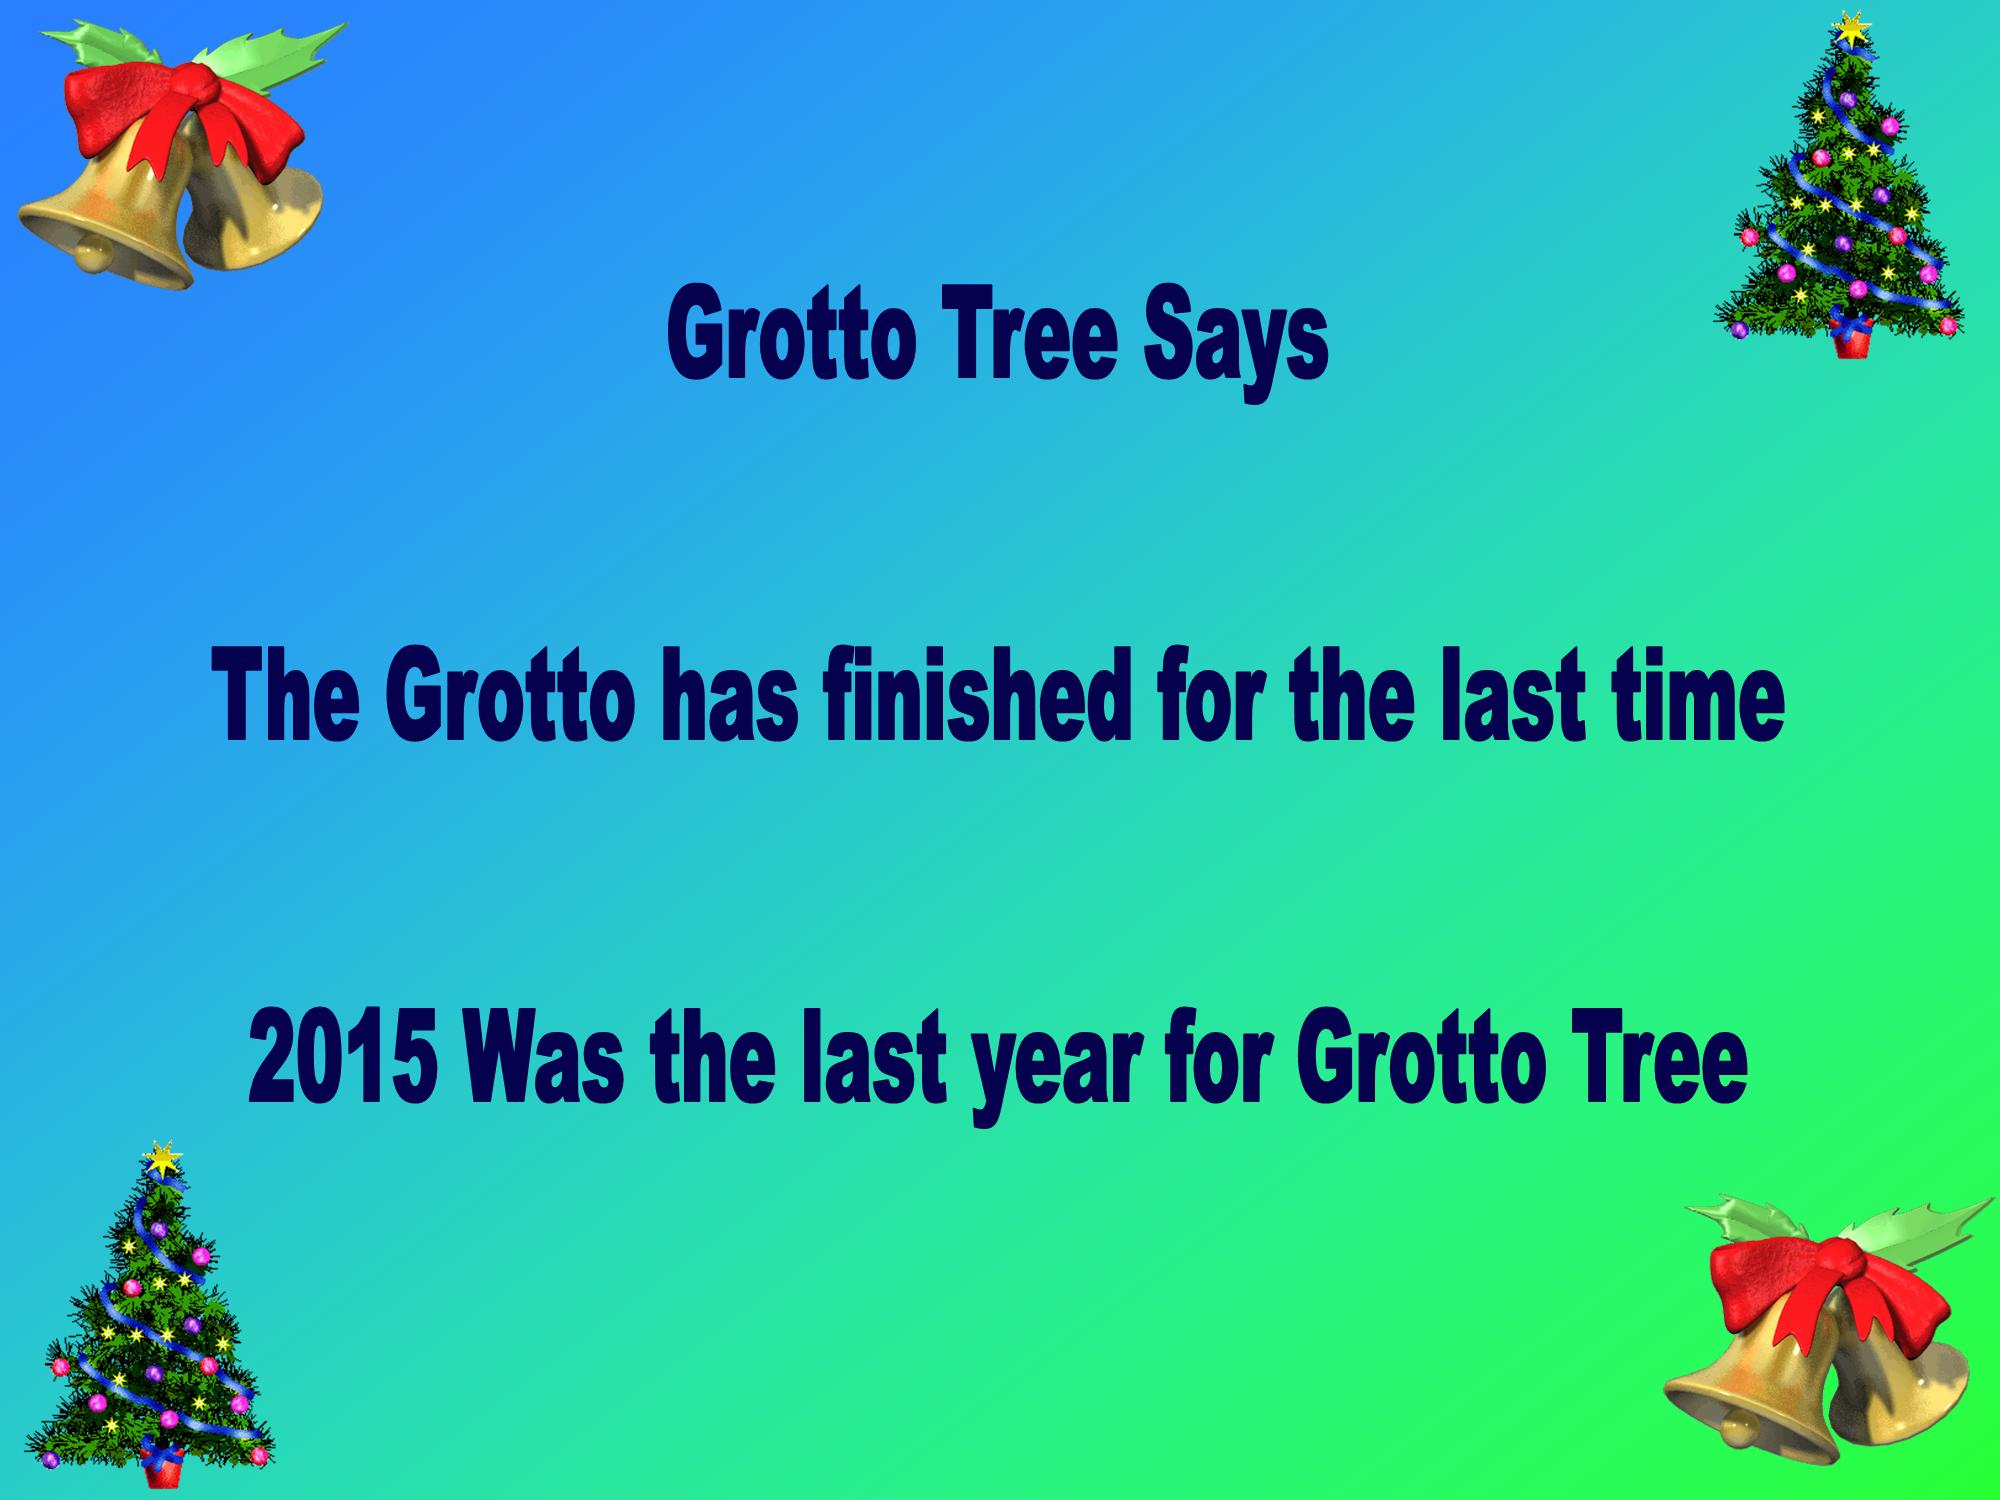 Grotto Tree is over since 2015.